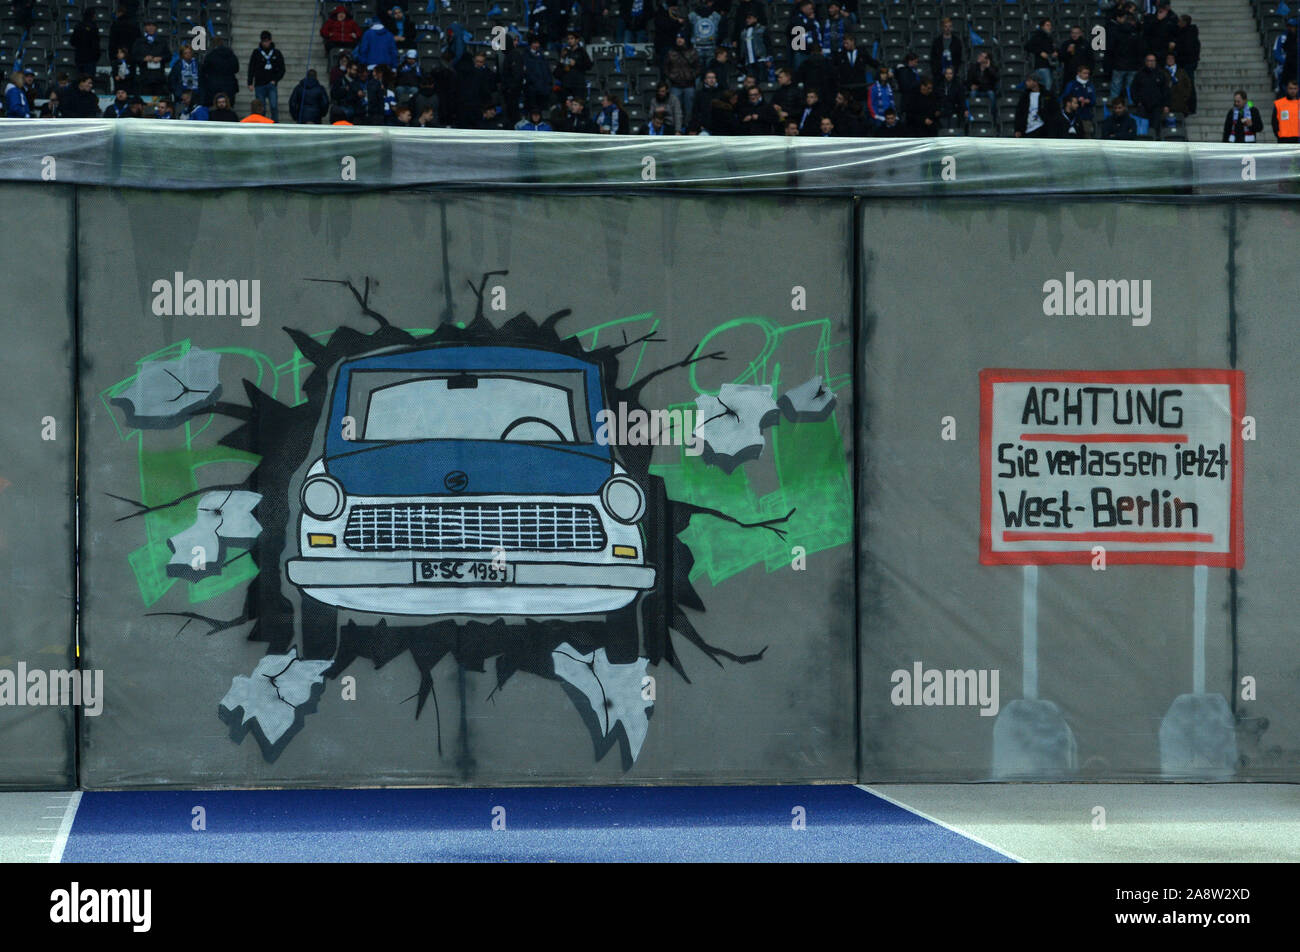 Berlin, Deutschland. 09th Nov, 2019. Afterburn of the Berlin Wall, 30 Years Fall of the Berlin Wall, Trabi/Trabant Breaks the Wall, Berlin History, Football 1. Bundesliga, 11th matchday, Hertha BSC Berlin (B) - RB Leipzig (L) 2: 4, on 09.11.2019 in Berlin/Germany. vǬ | usage worldwide Credit: dpa/Alamy Live News Stock Photo